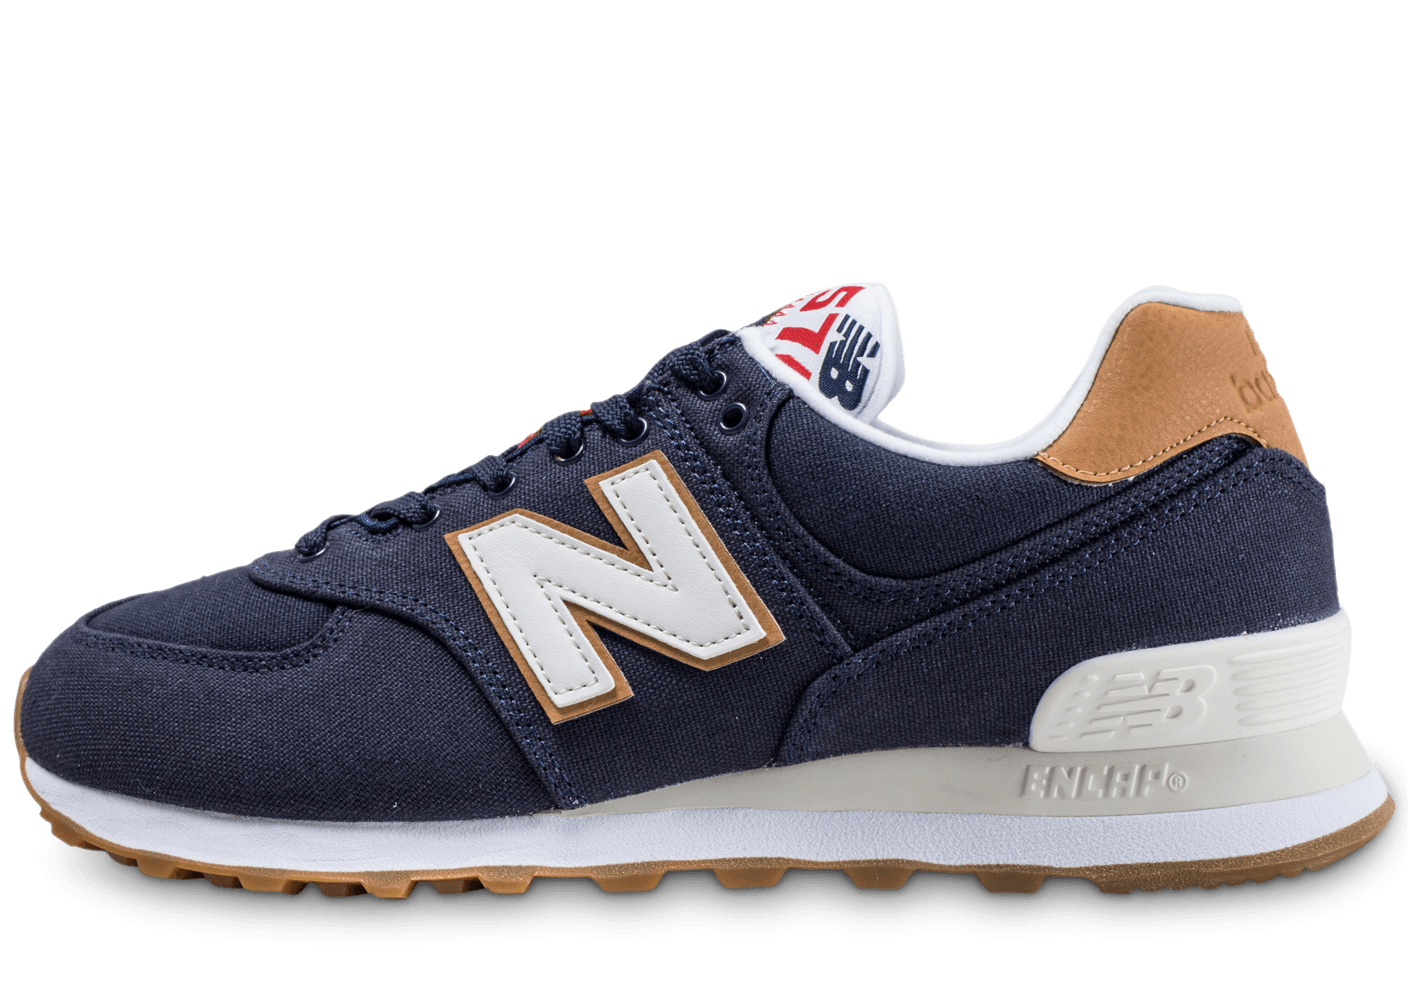 New Balance Chaussures pour Hommes | New Balance Chaussures